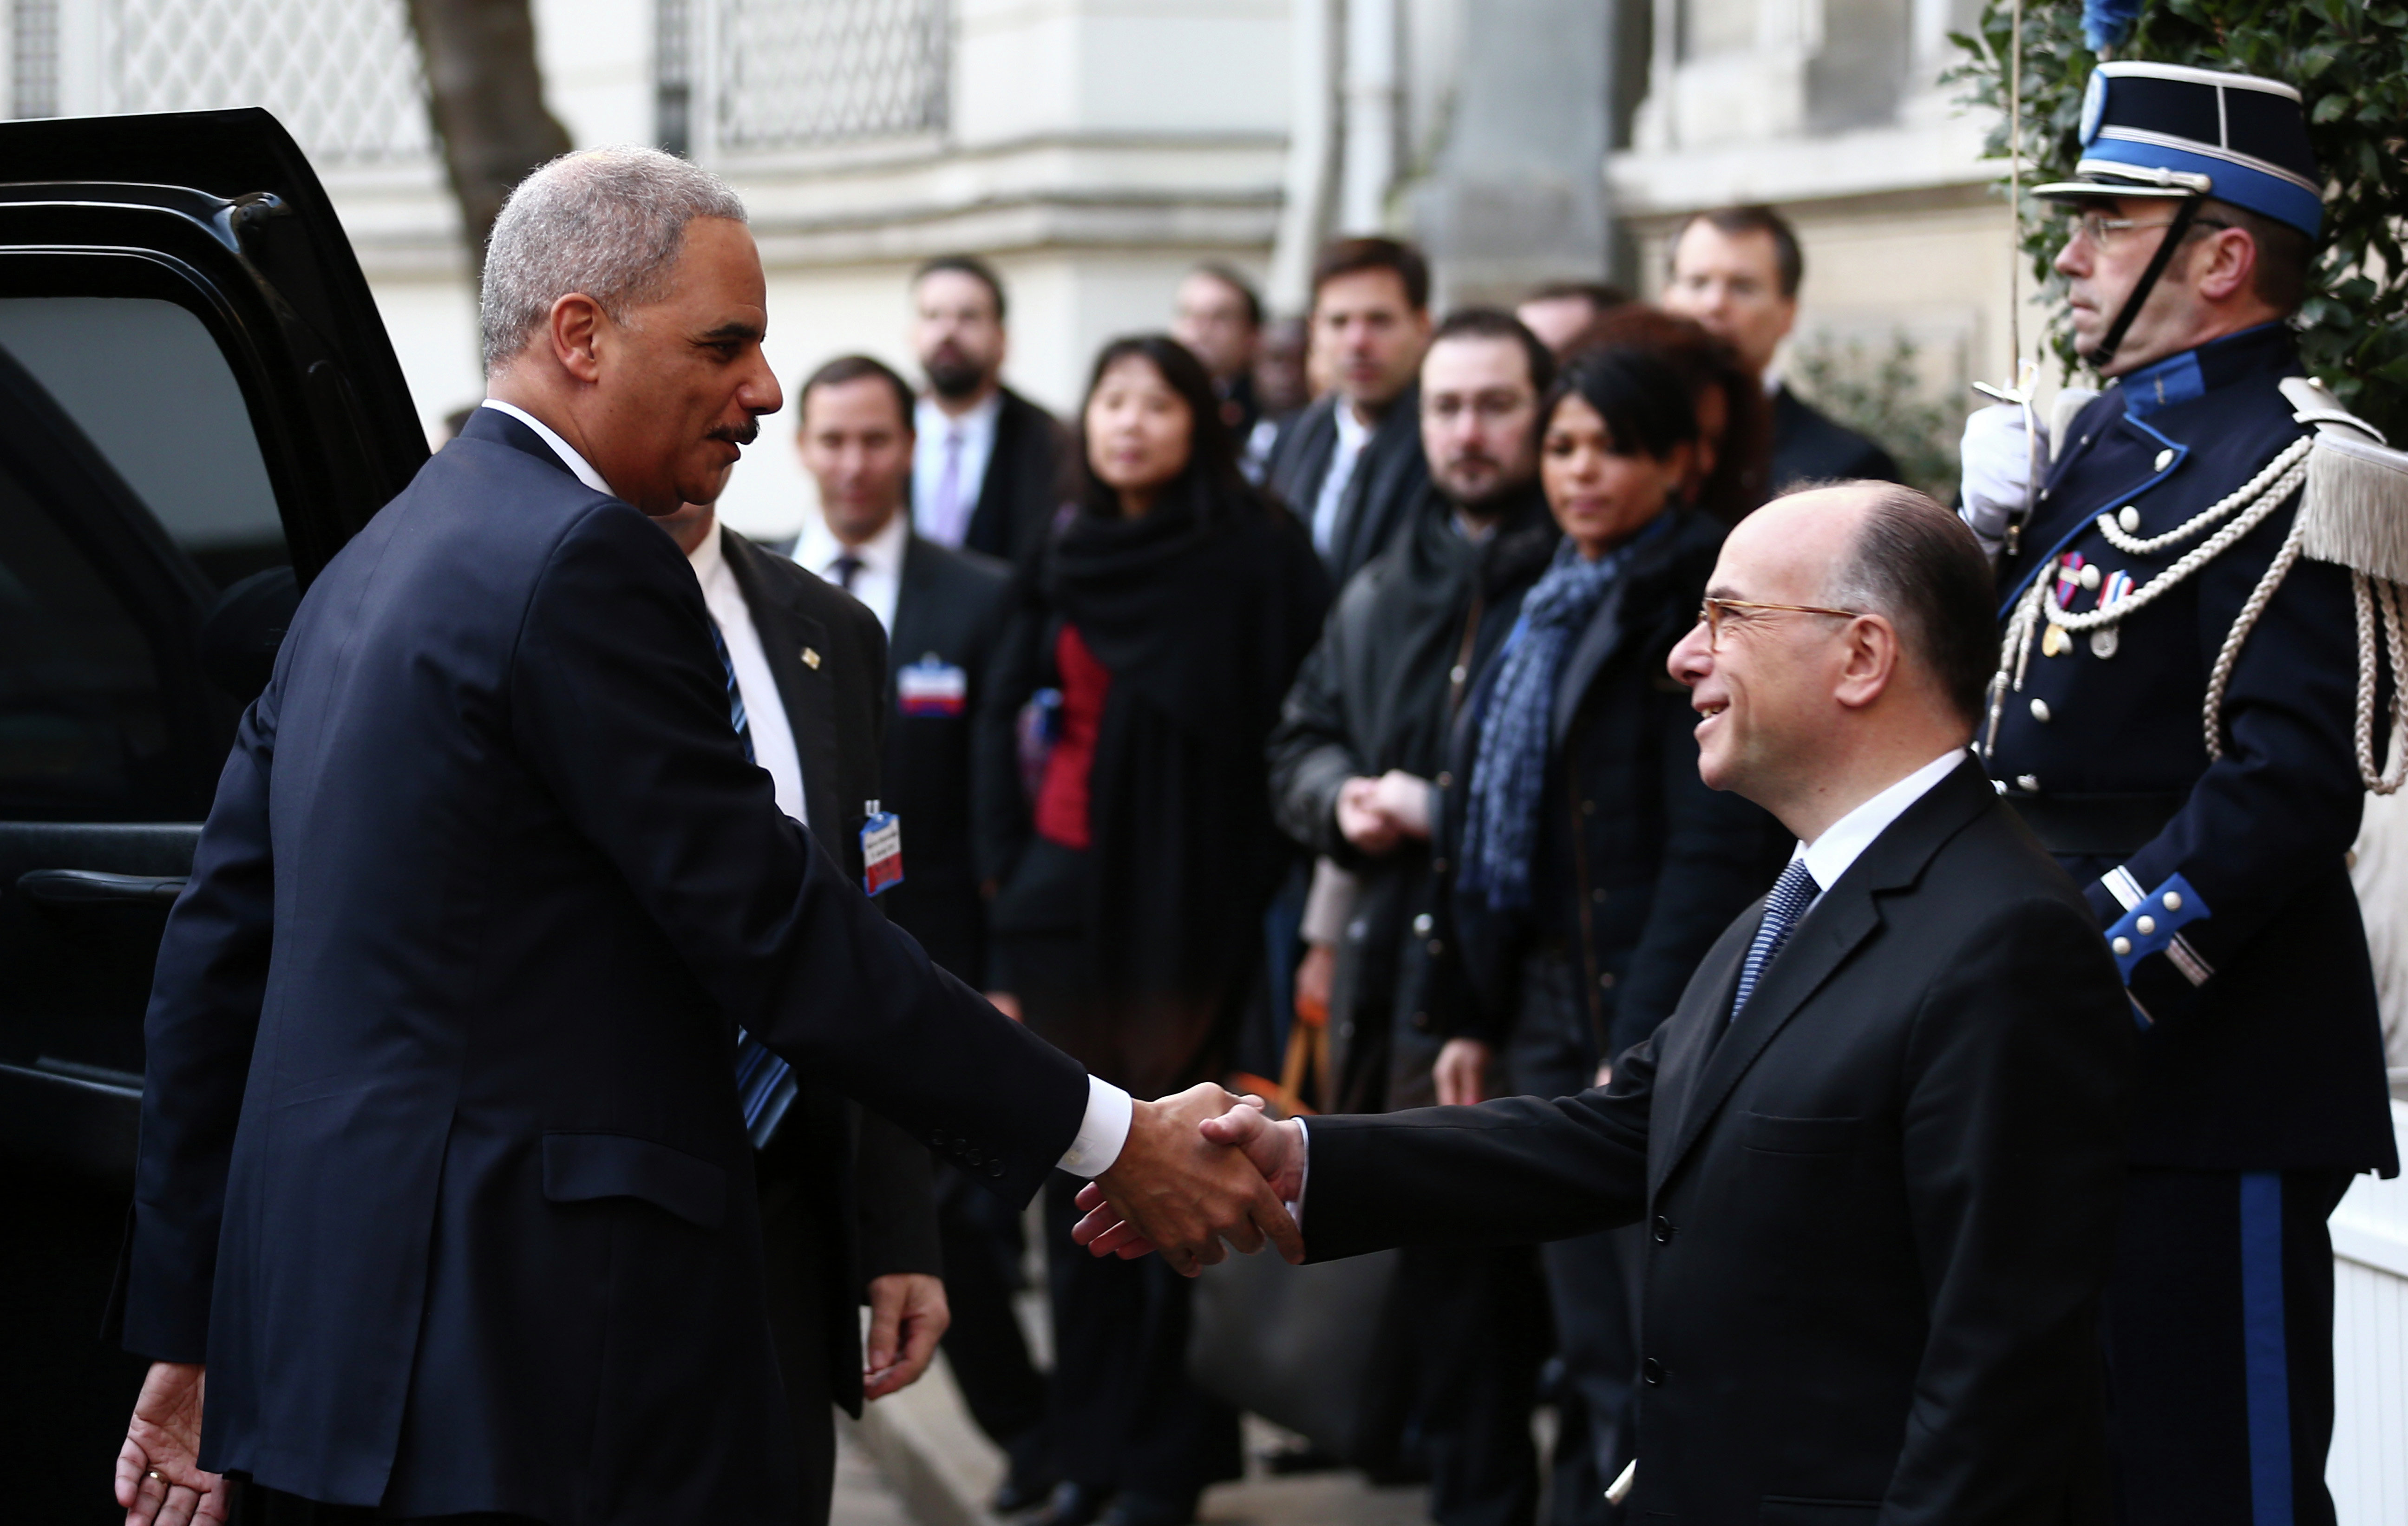 U.S Attorney General Eric Holder, left, is welcomed by French Interior Minister Bernard Cazeneuve before the start of an international meeting aimed at fighting terrorism, in Paris, France, Sunday, Jan. 11, 2015. A rally of defiance and sorrow, protected by an unparalleled level of security, on Sunday will honor the 17 victims of three days of bloodshed in Paris that left France on alert for more violence.